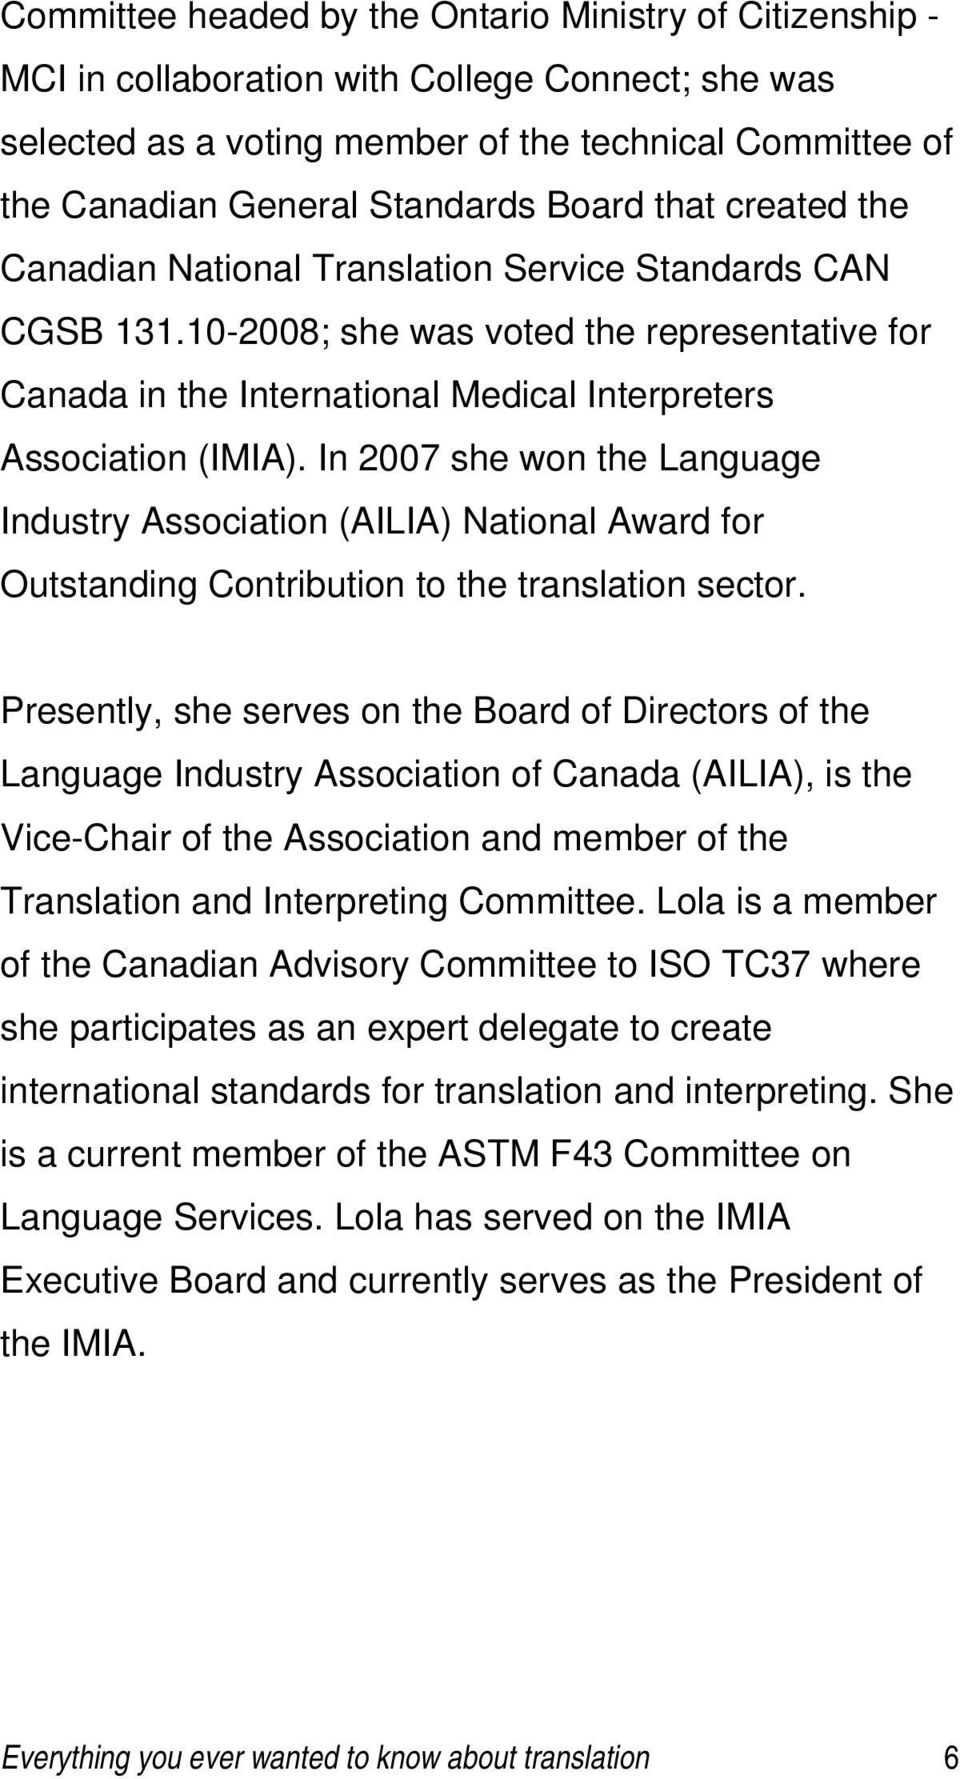 In 2007 she won the Language Industry Association (AILIA) National Award for Outstanding Contribution to the translation sector.